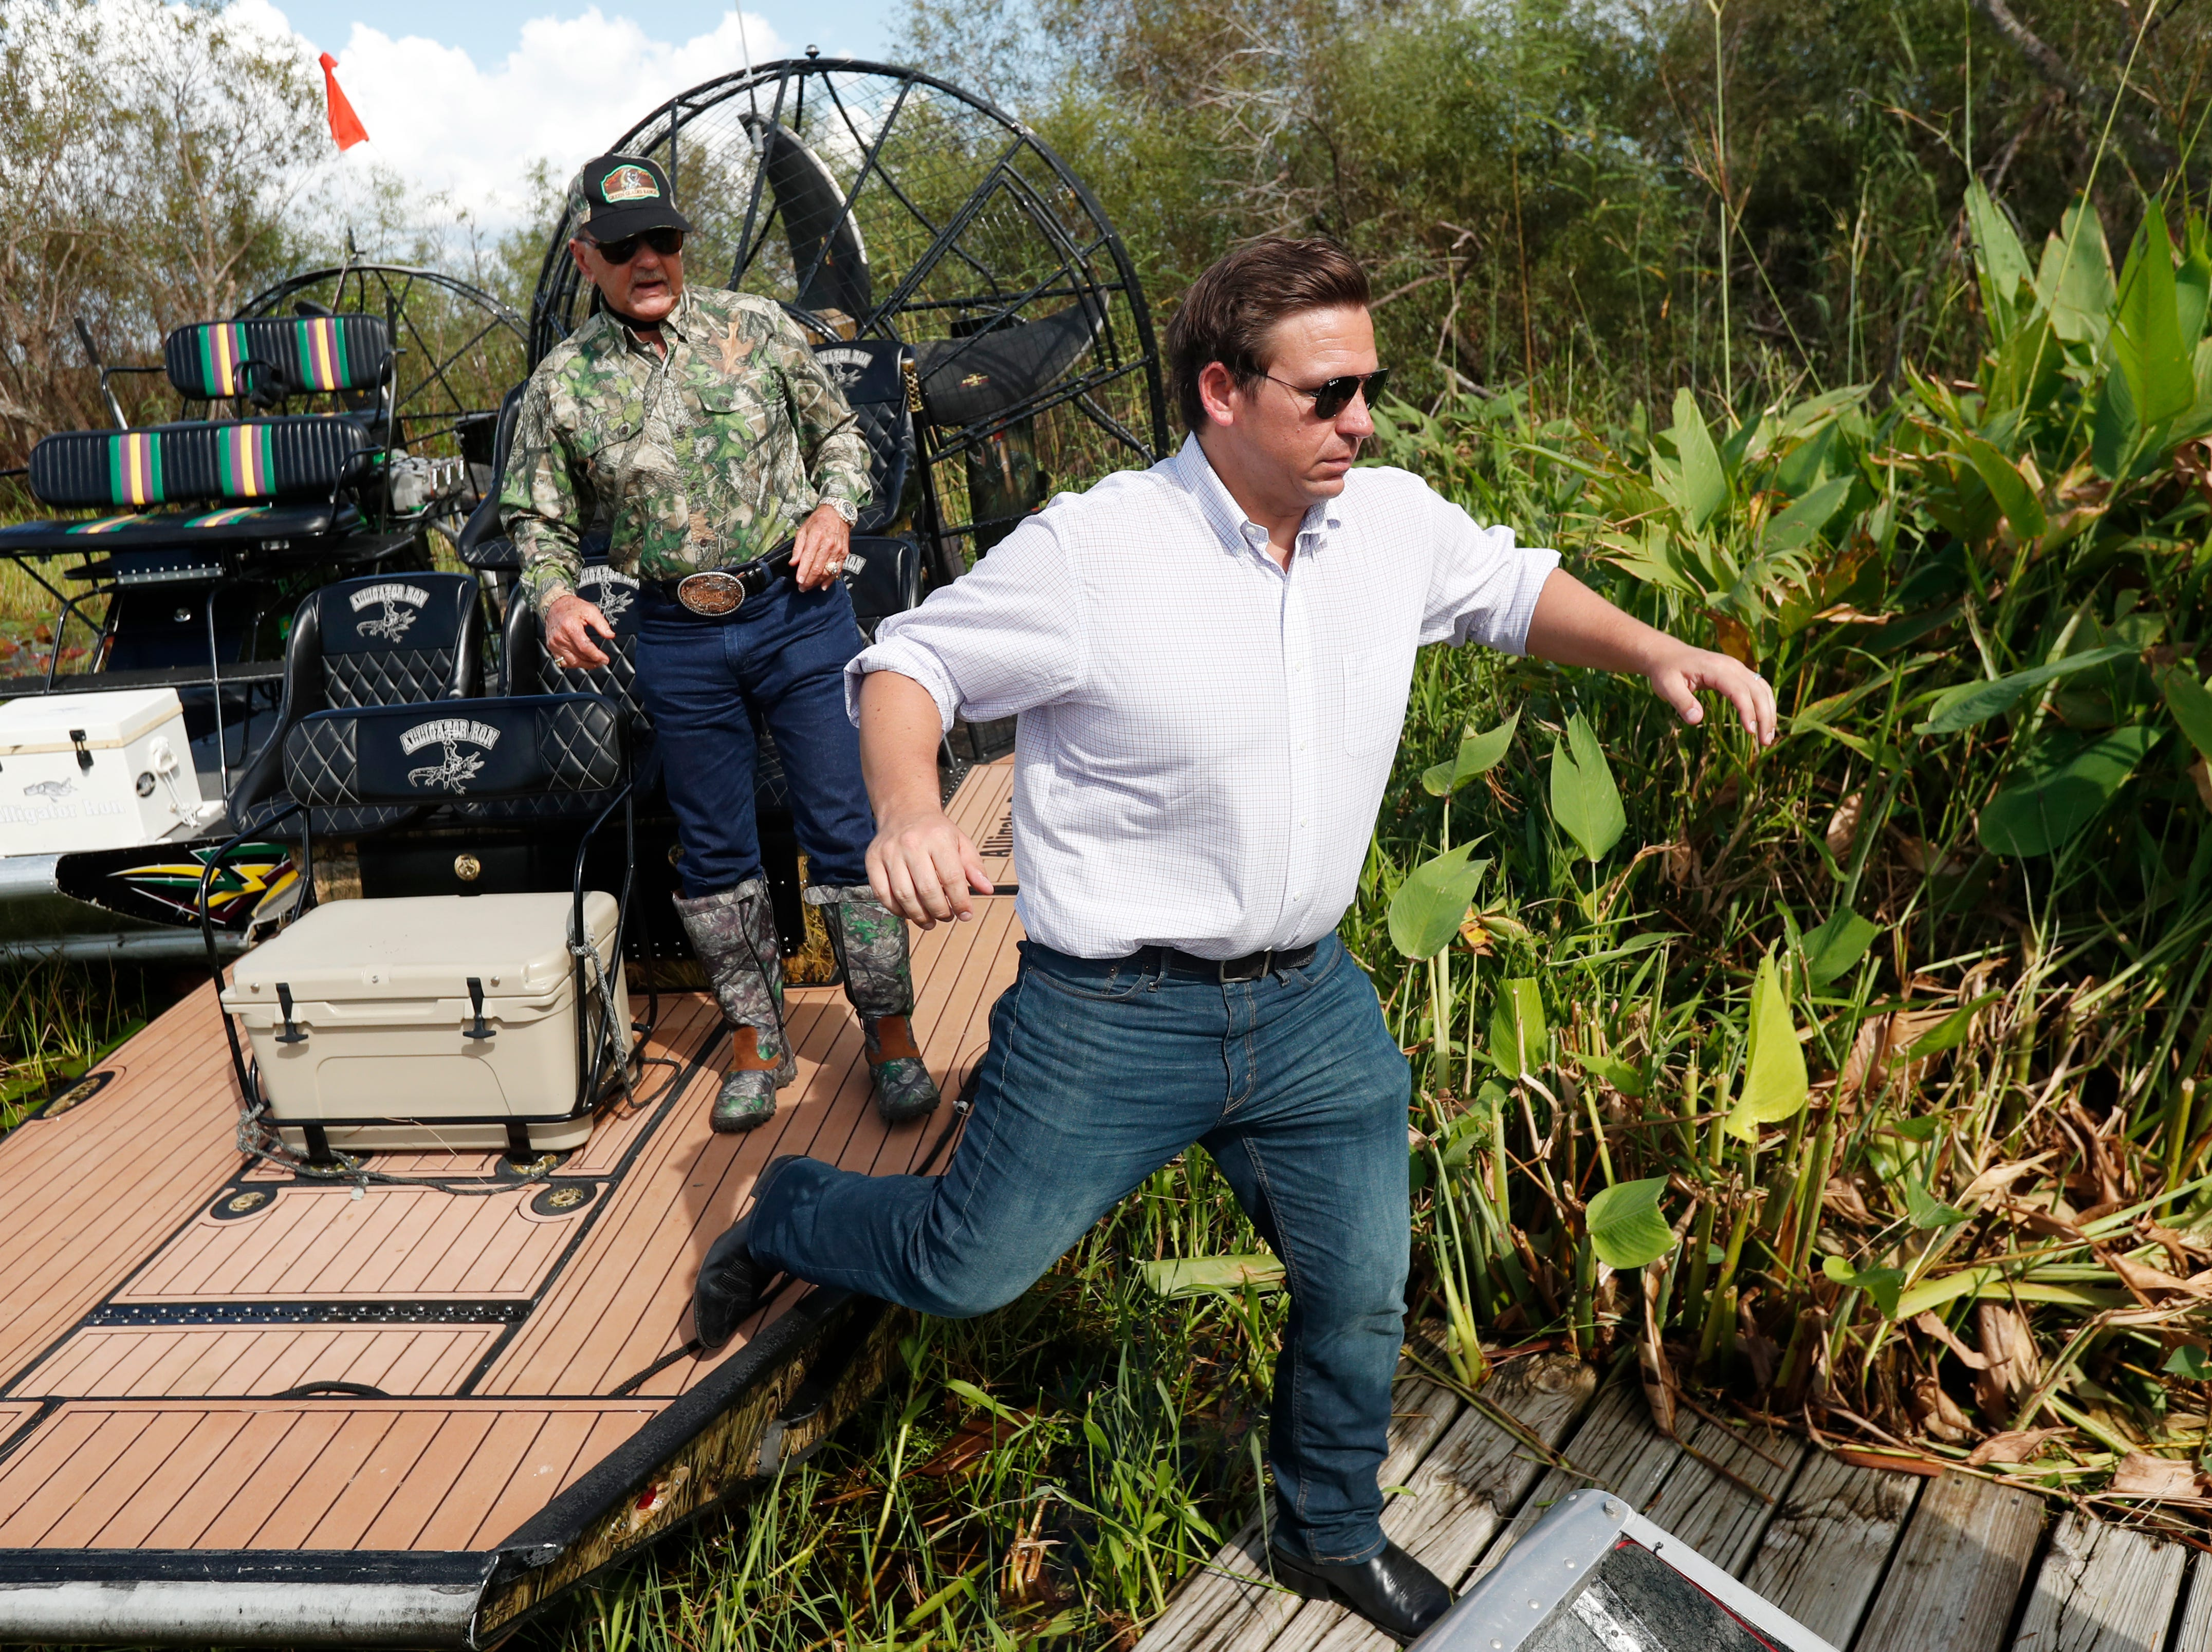 Republican candidate for Florida Governor Ron DeSantis, gets off an airboat with Gladesman and former Florida Fish and Wildlife Conservation commissioner Ron Bergeron after a tour of the Florida Everglades, Wednesday, Sept. 12, 2018, in Fort Lauderdale, Fla. (AP Photo/Wilfredo Lee)